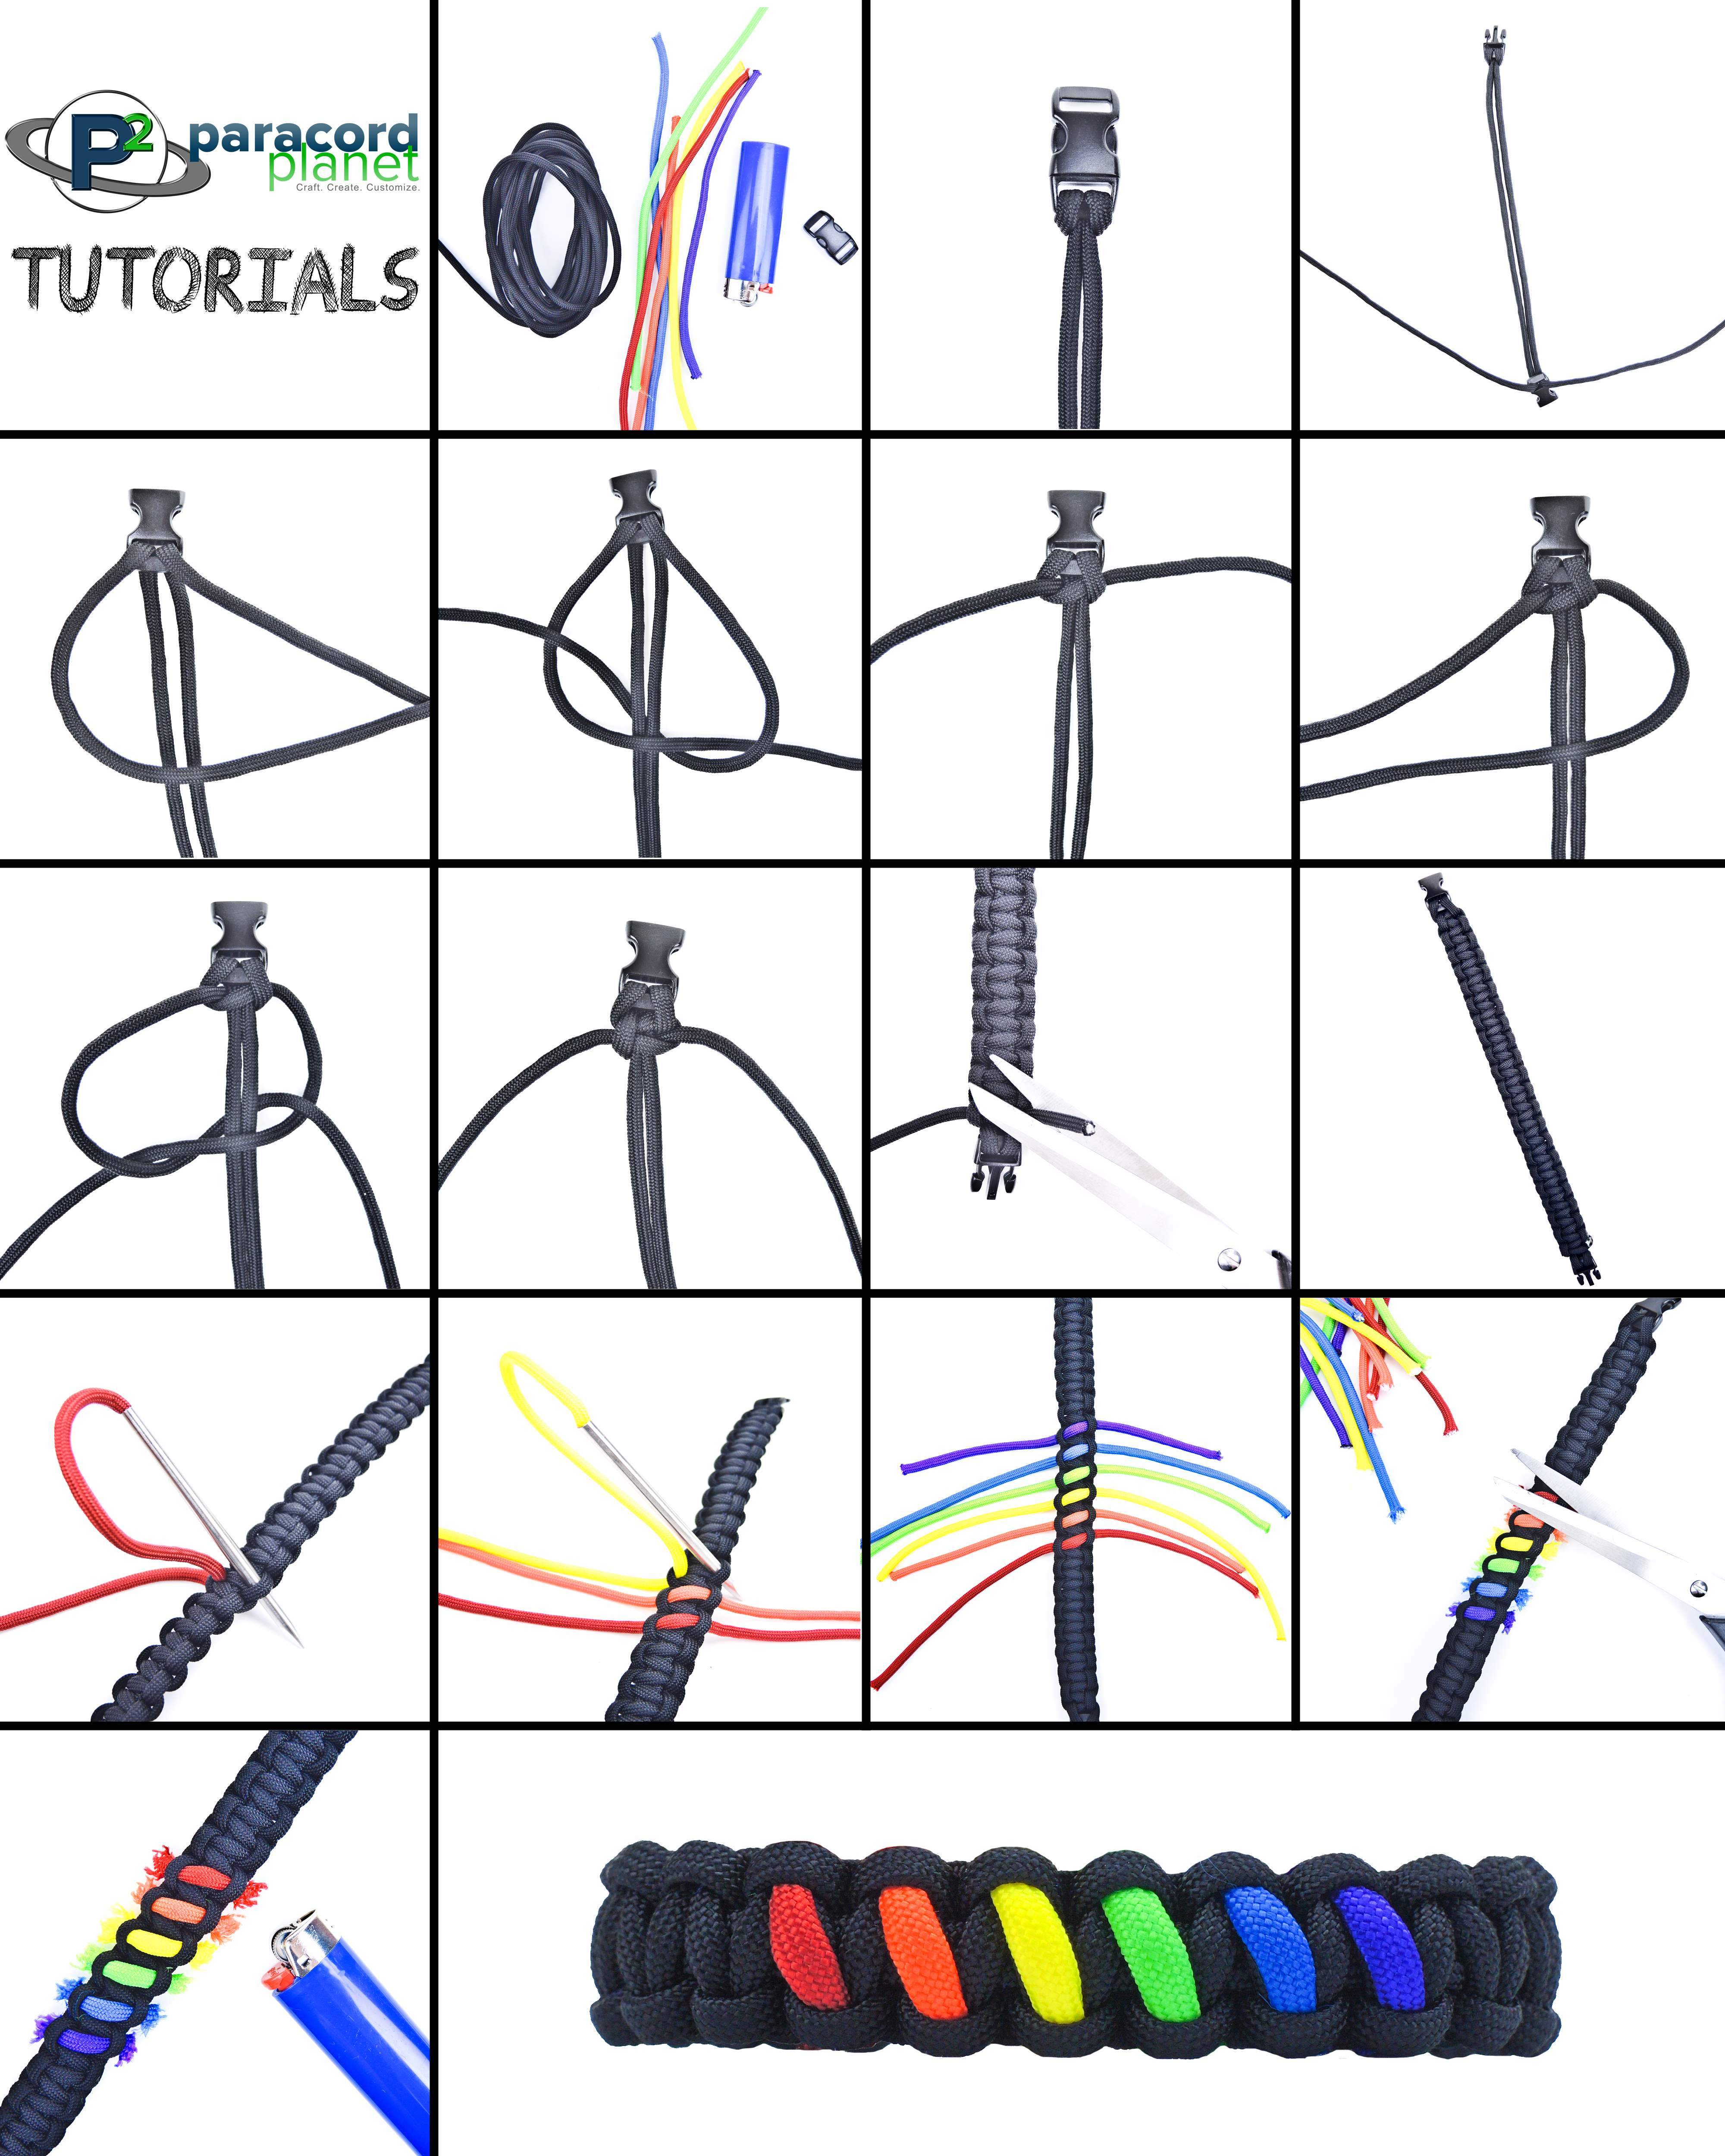 Paracord Rainbow Cobra Bracelet photo tutorial